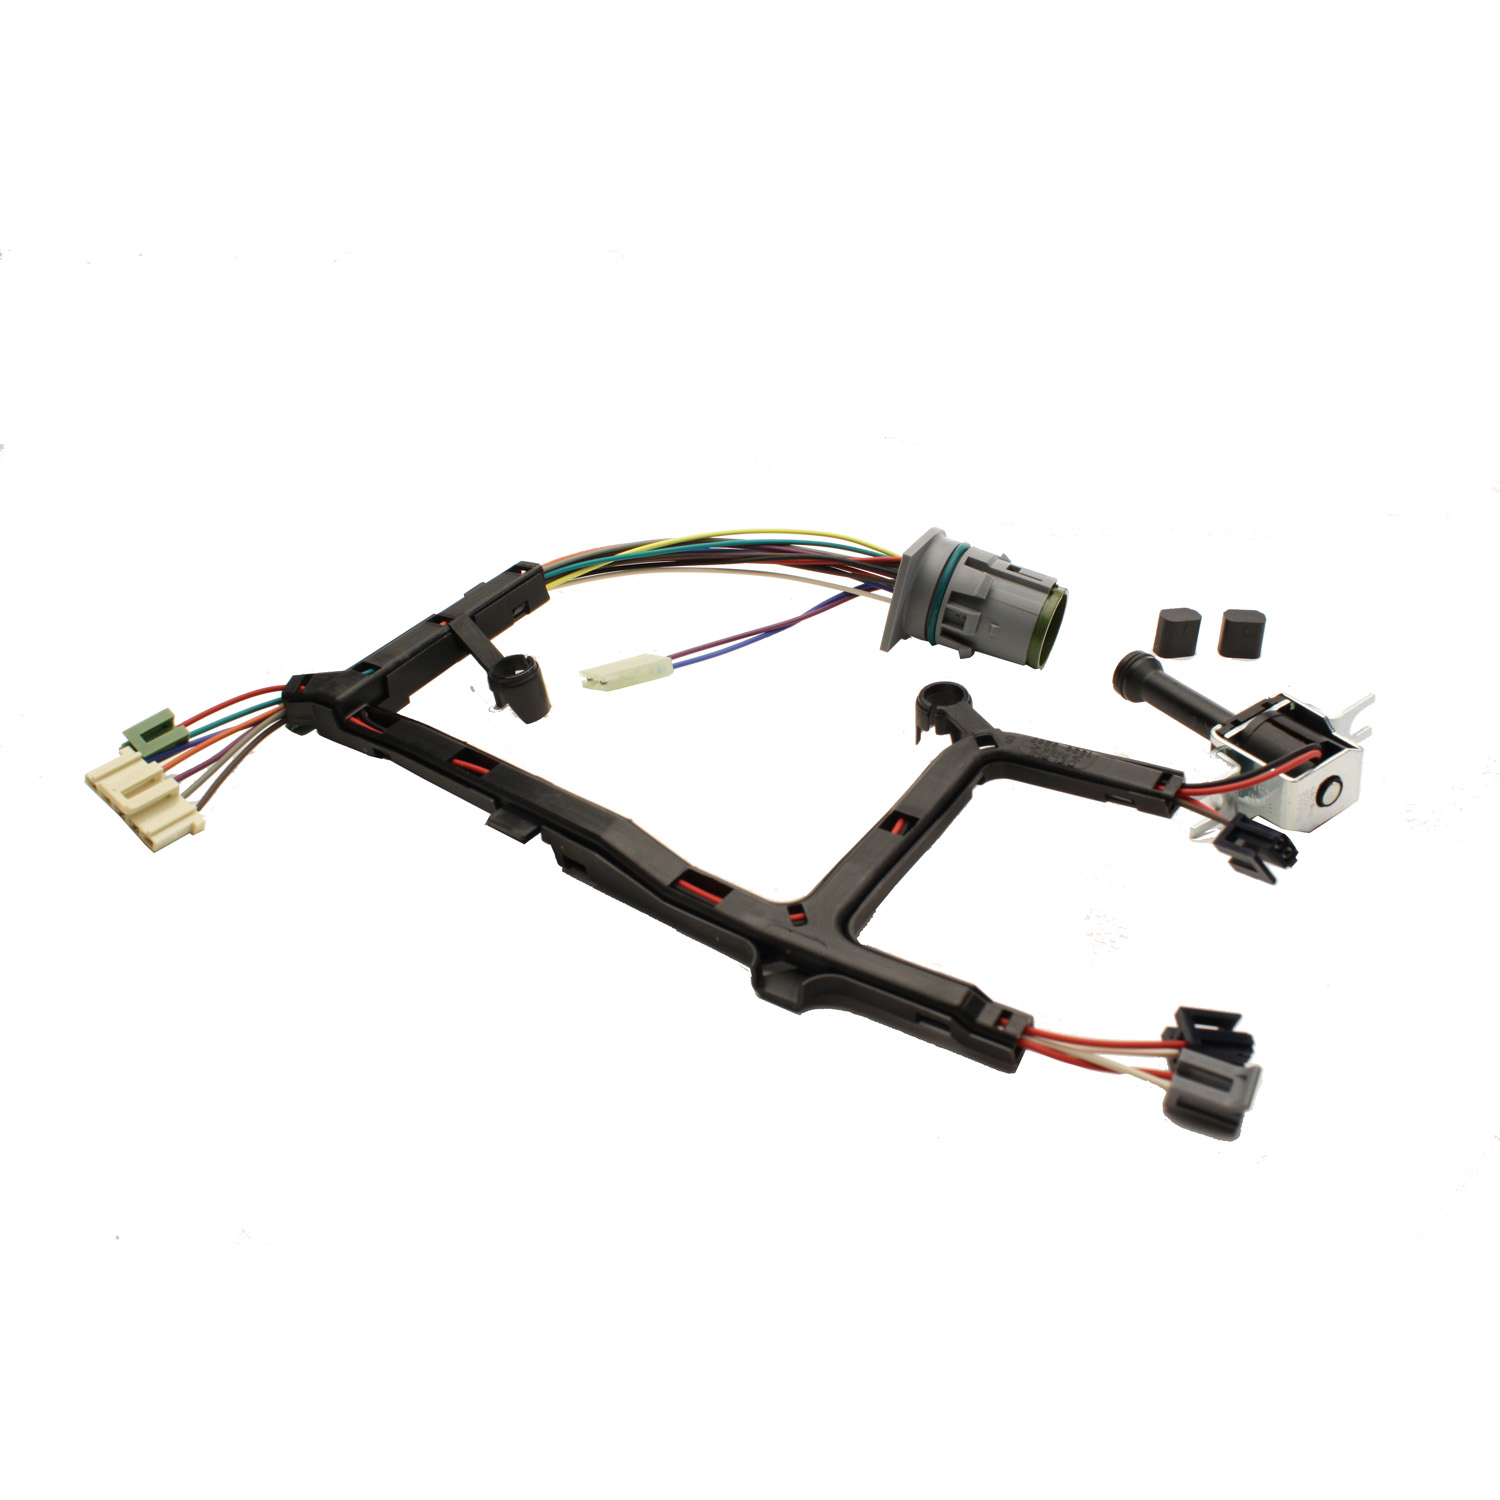 tcc solenoid wiring harness for the gm 4l60e 1993 2002 transtar rh transtar1 com Starter Solenoid Wiring Diagram GM Starter Solenoid Wiring Diagram